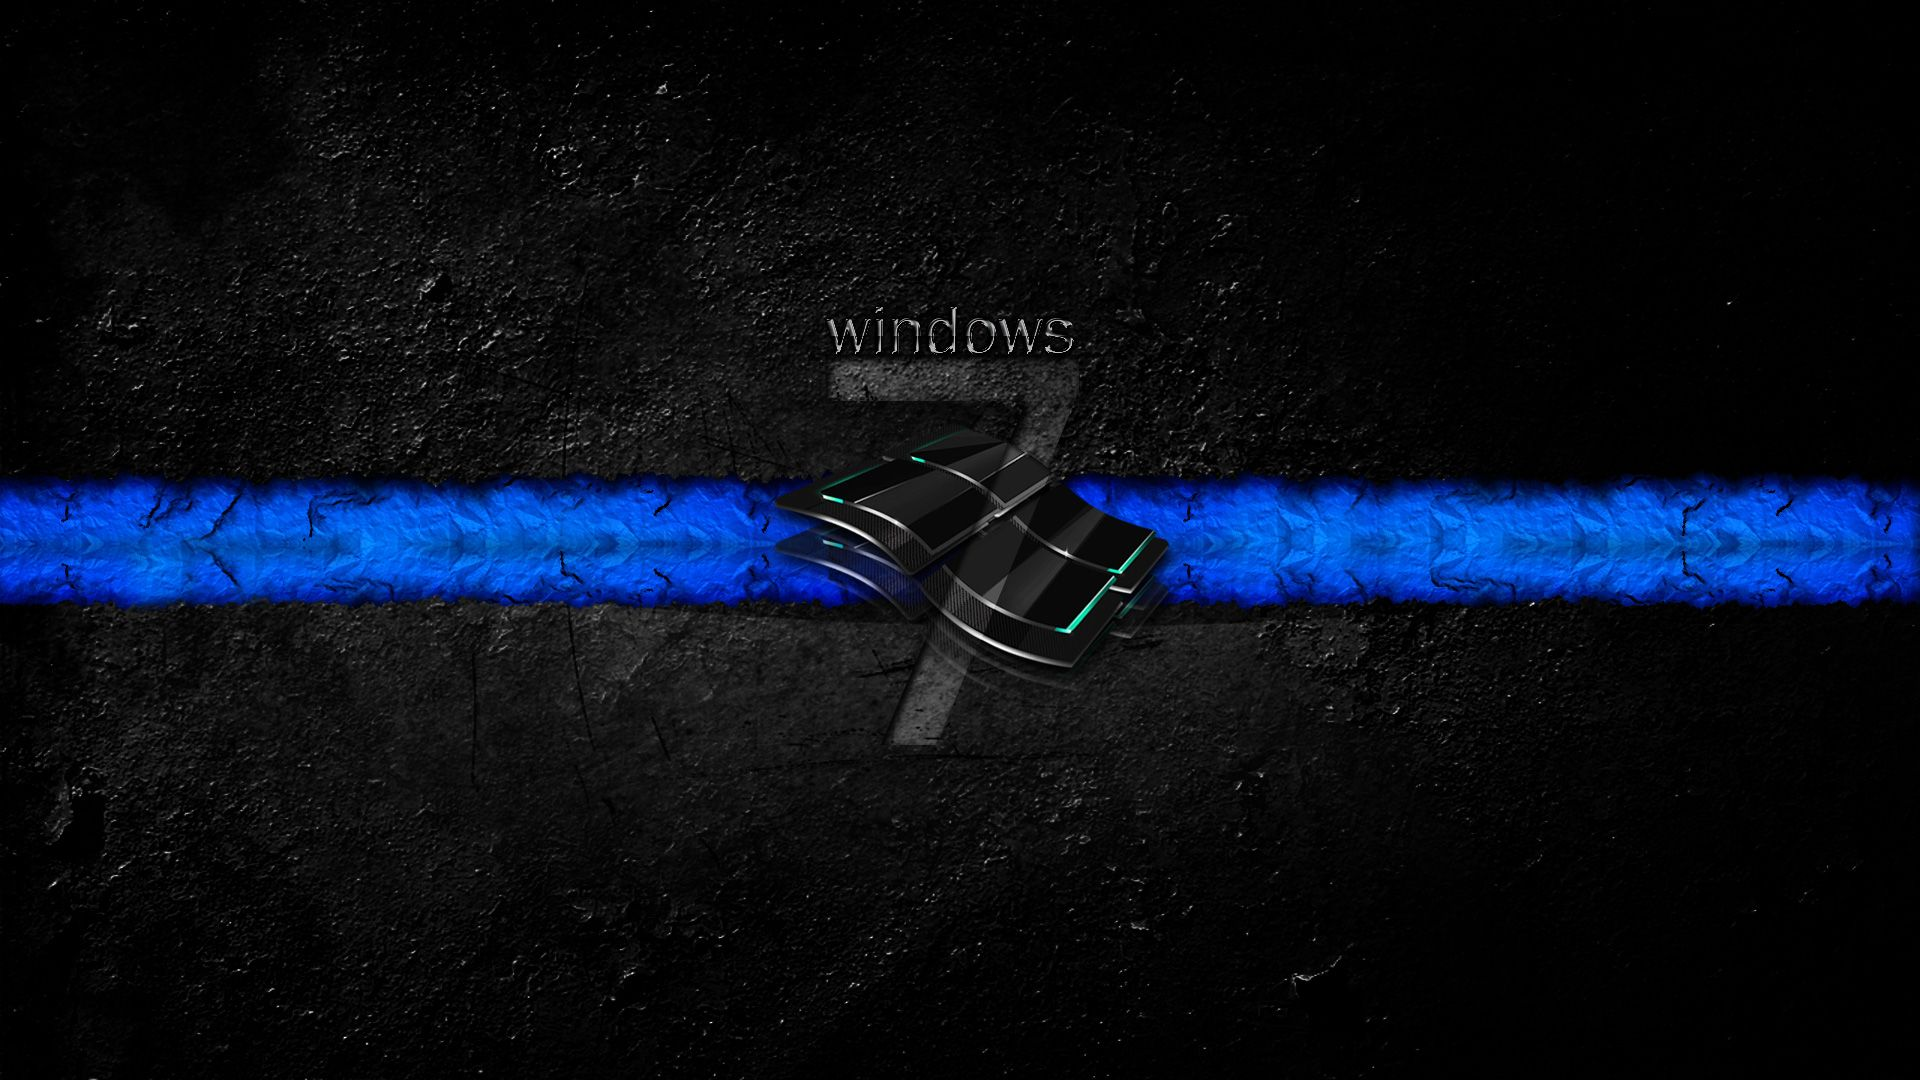 windows 7 computer hd desktop wallpaper windows wallpaper computers no